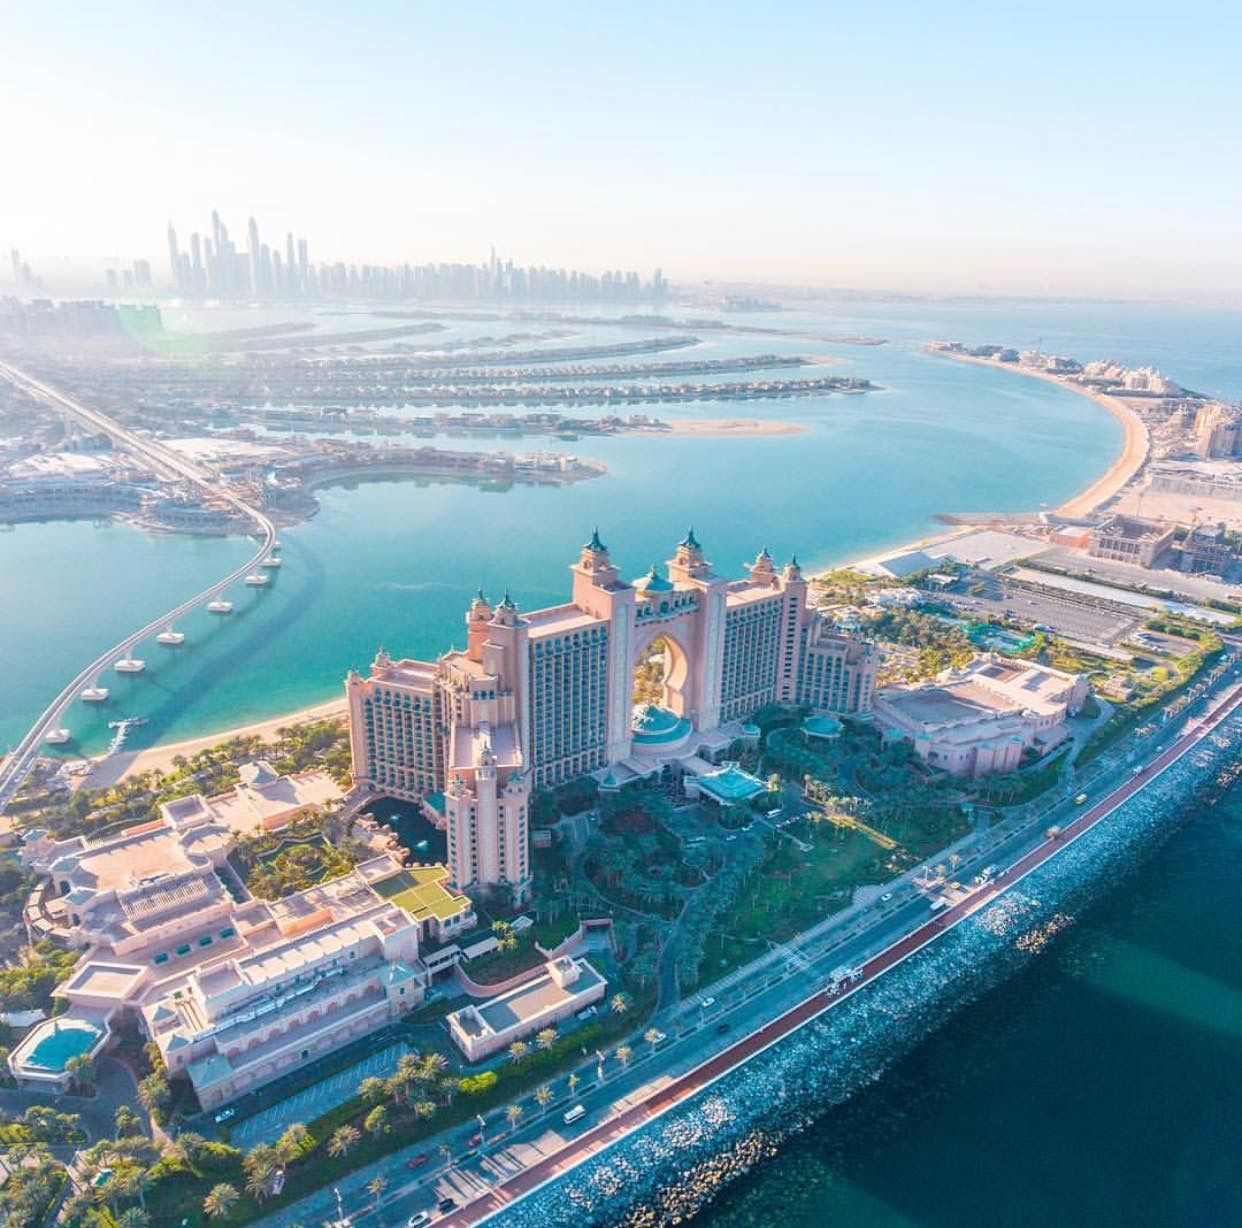 Buy, Sell, Rent Apartments And Villas In Dubai UAE In 2020